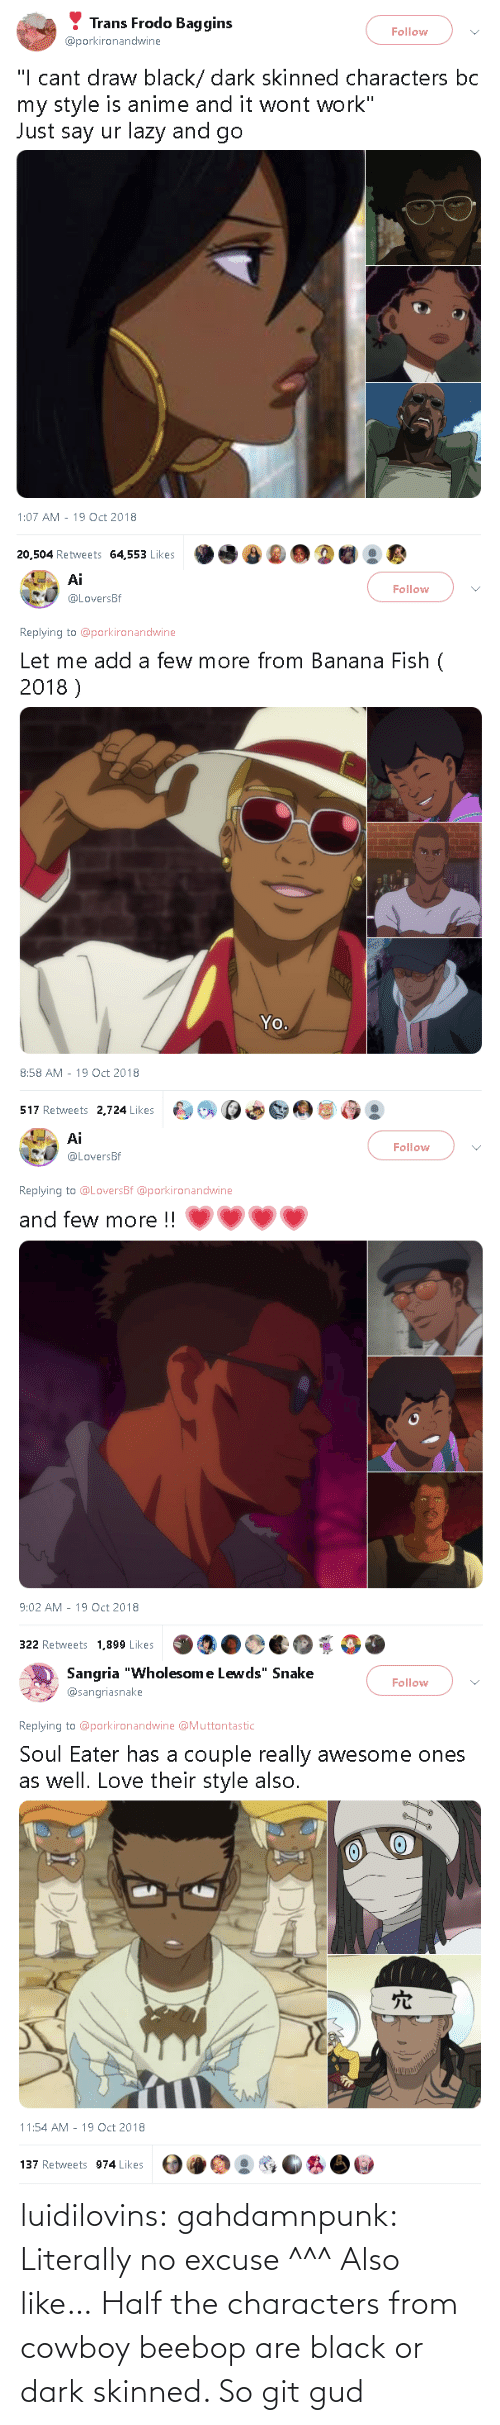 excuse: luidilovins: gahdamnpunk: Literally no excuse ^^^  Also like… Half the characters from cowboy beebop are black or dark skinned.        So git gud